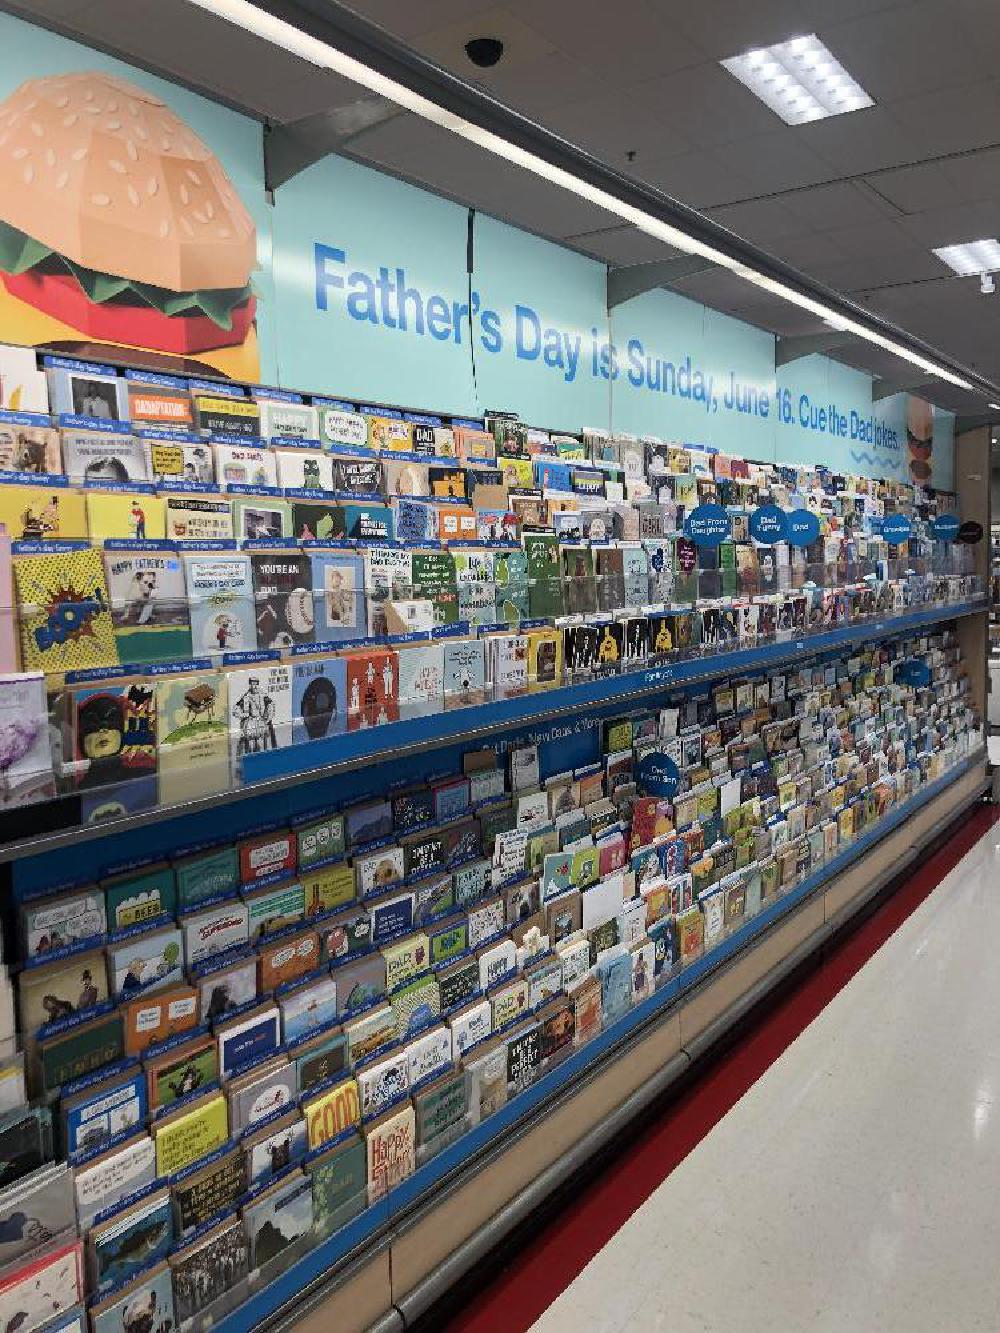 Father's Day Cards with American Greetings